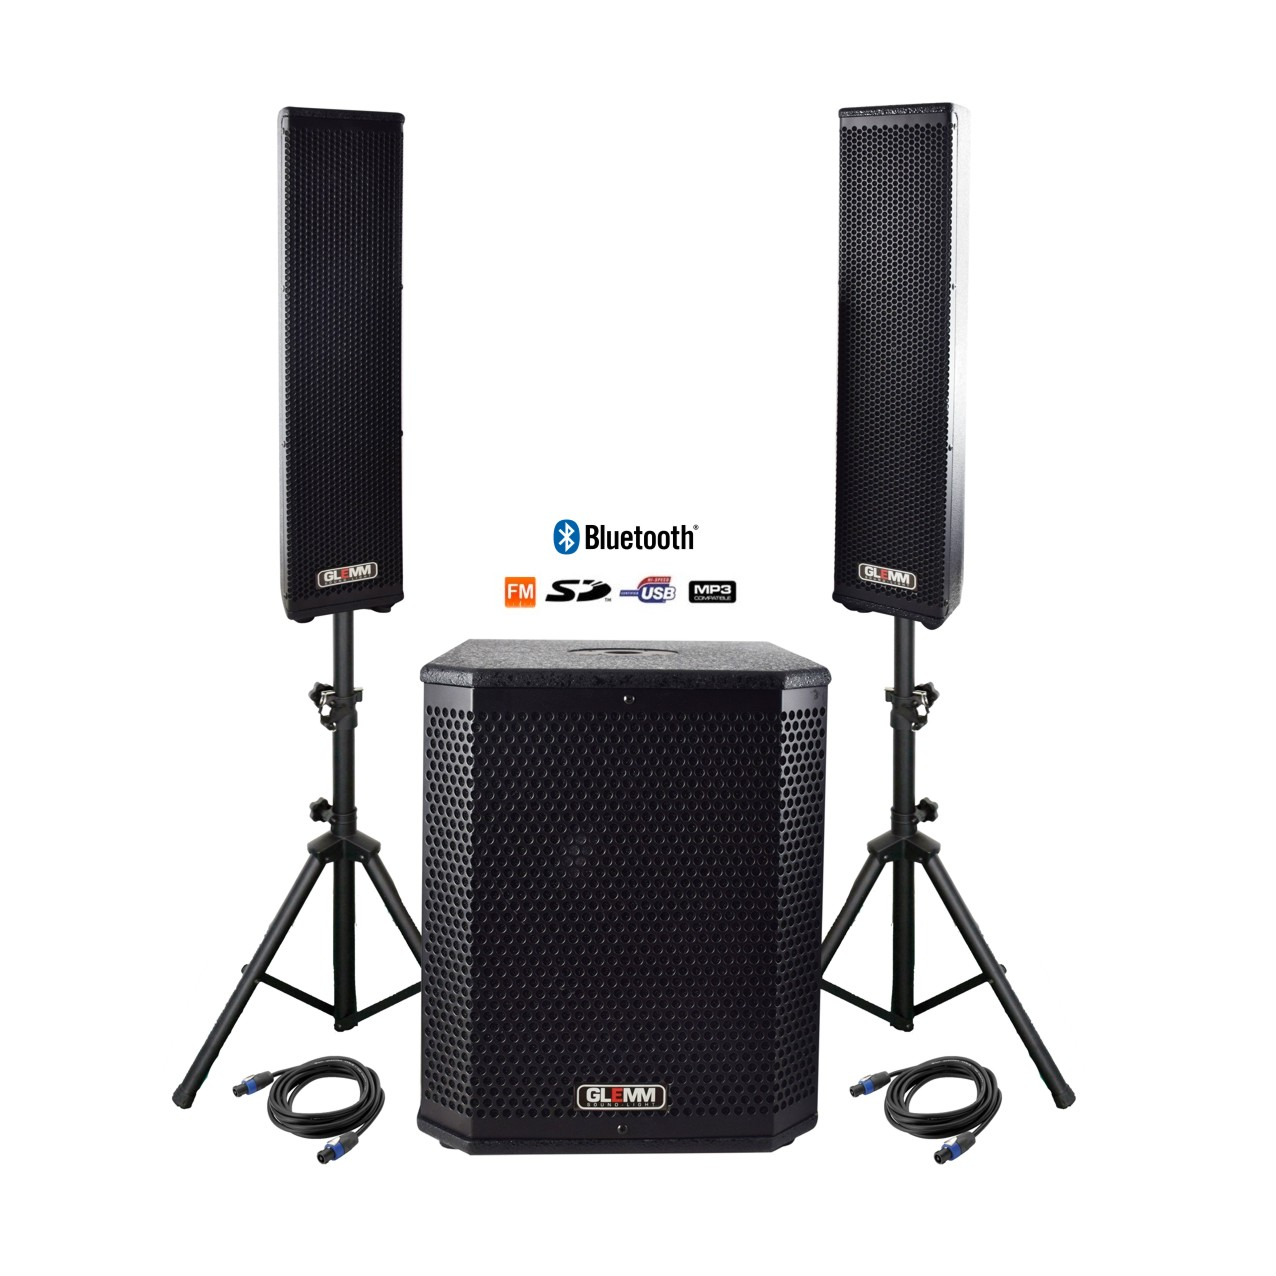 SYSTEME TRIPHONIQUE AMPLIFIE MP3/BLUETOOTH